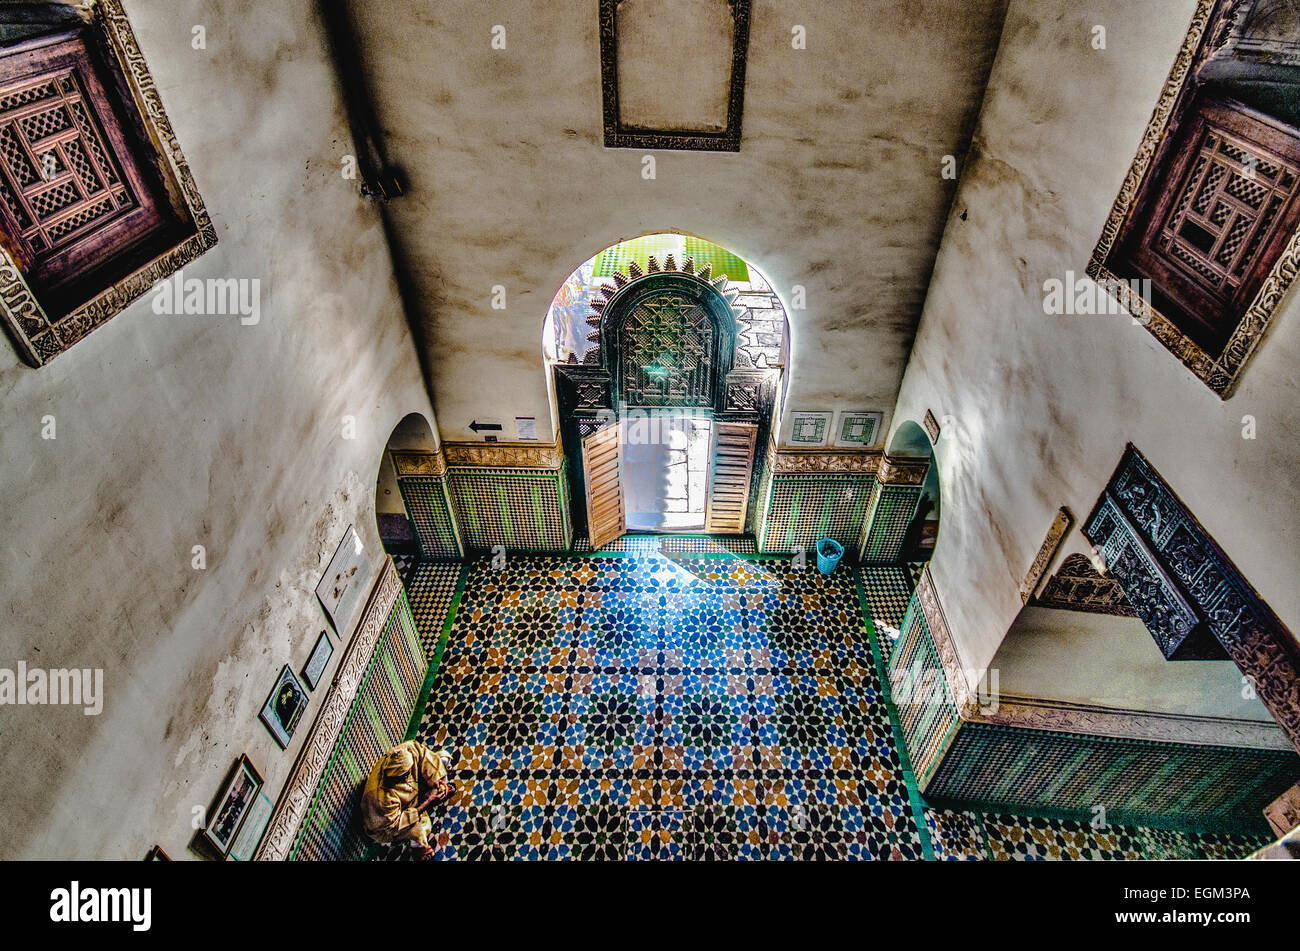 A man sits on a mosaic tiled floor in the Museum of Marrakech - Stock Image